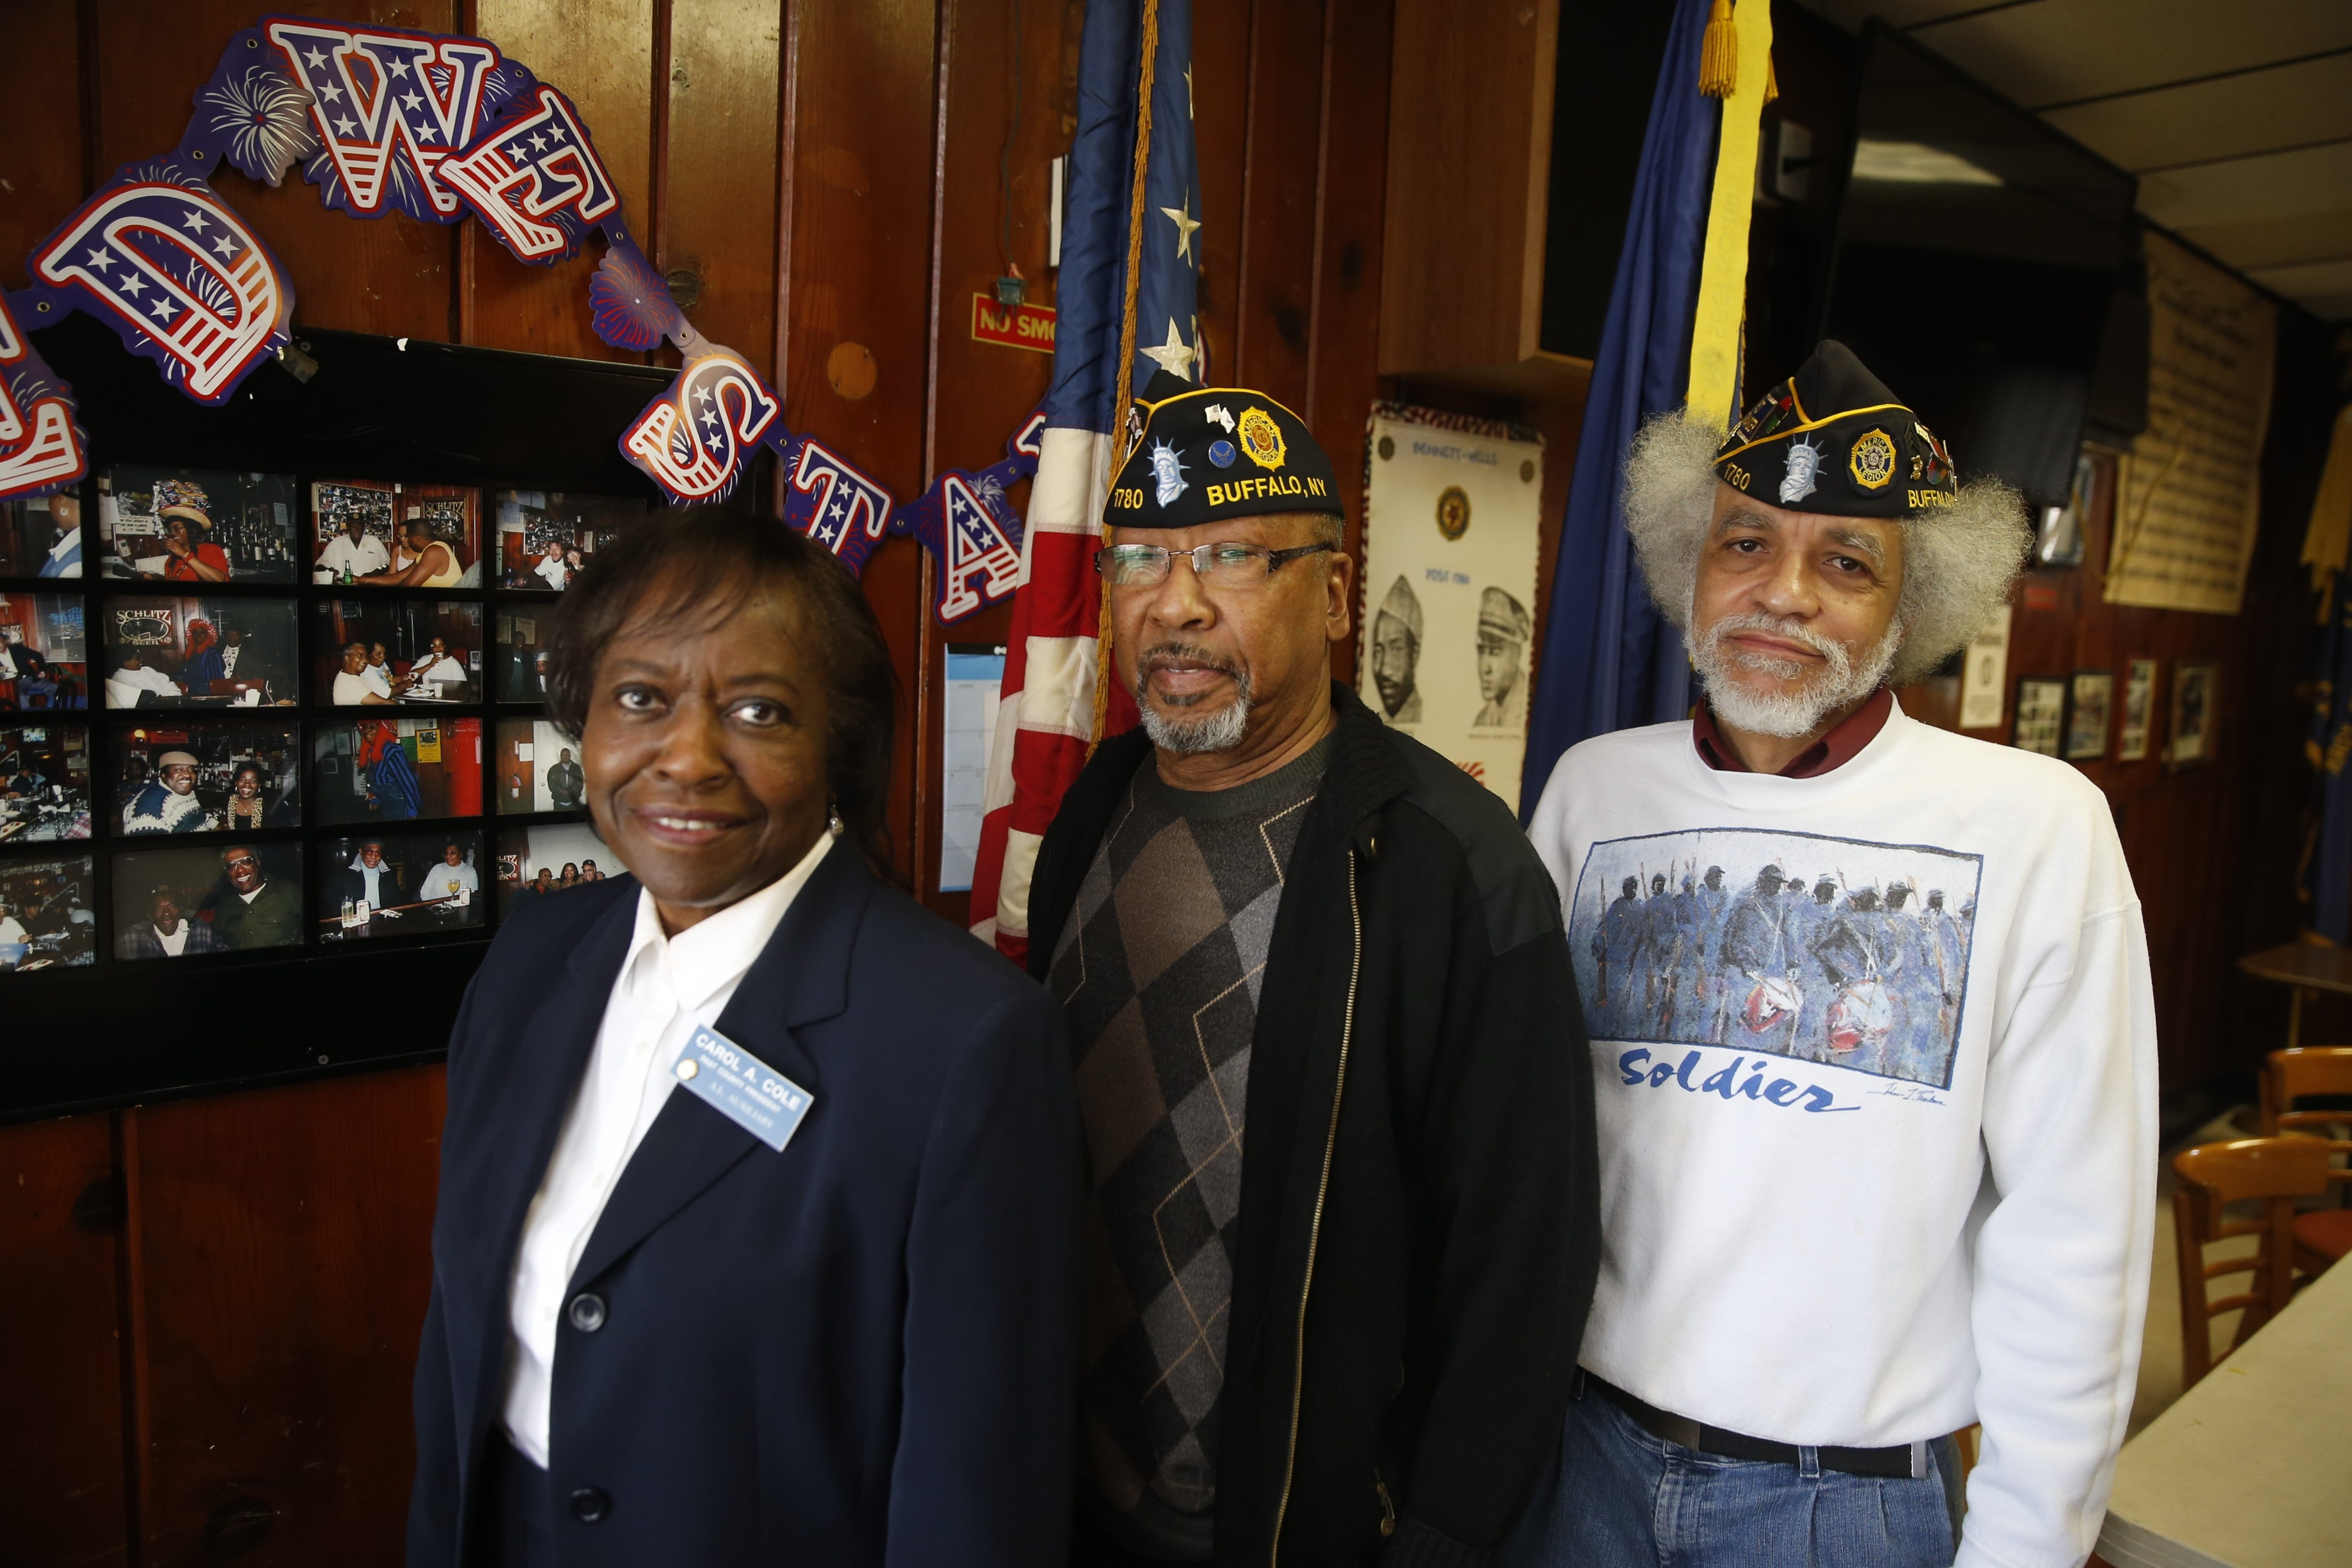 Bennett-Wells American Legion Post 1780 has been revived thanks to the efforts of, from left, auxiliary member Carole Cole and post officials Henry Jernigan and Walter Cole.